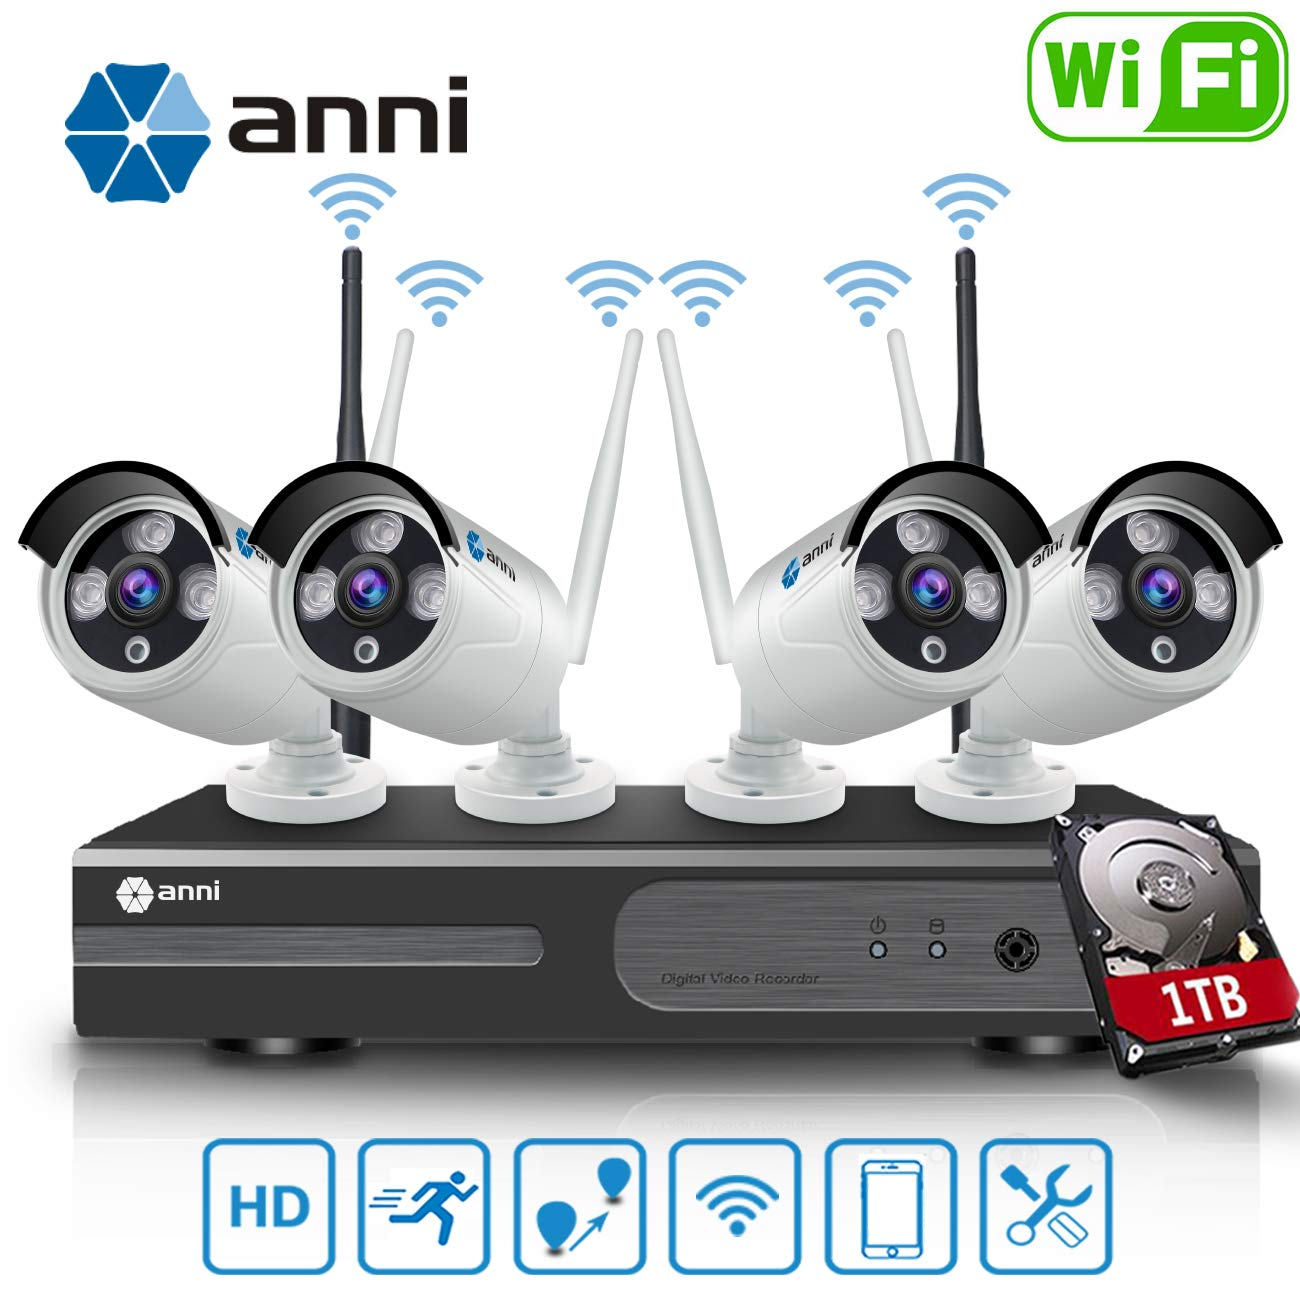 Update Strong Signal Version, Wireless Security Camera System, SANNCE 1080P 8CH NVR and 4 pcs 2MP IP66 Weatherproof Surveillance Cameras,Indoor Outdoor with 100FT Night Vision,1TB Hard Drive Included